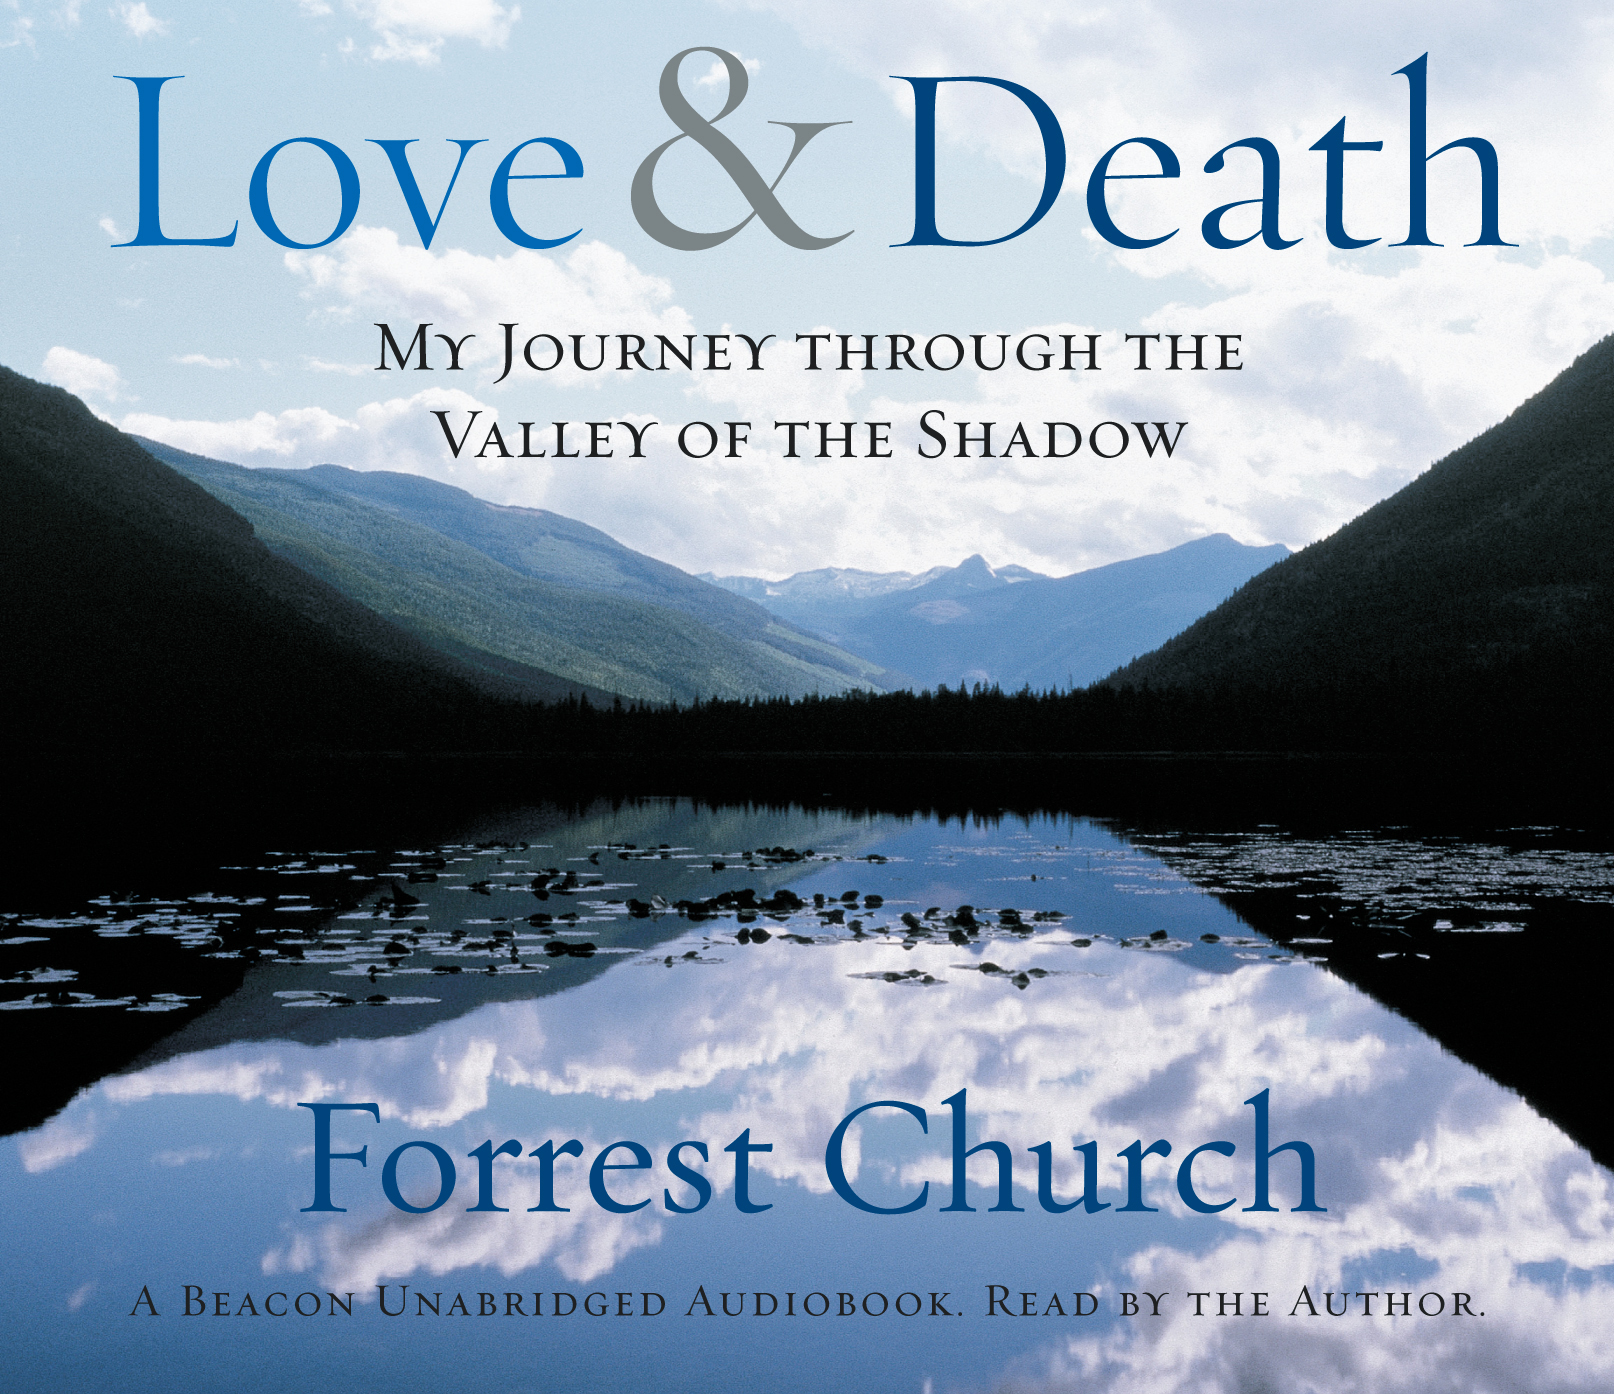 Forrest Church - Love and Death